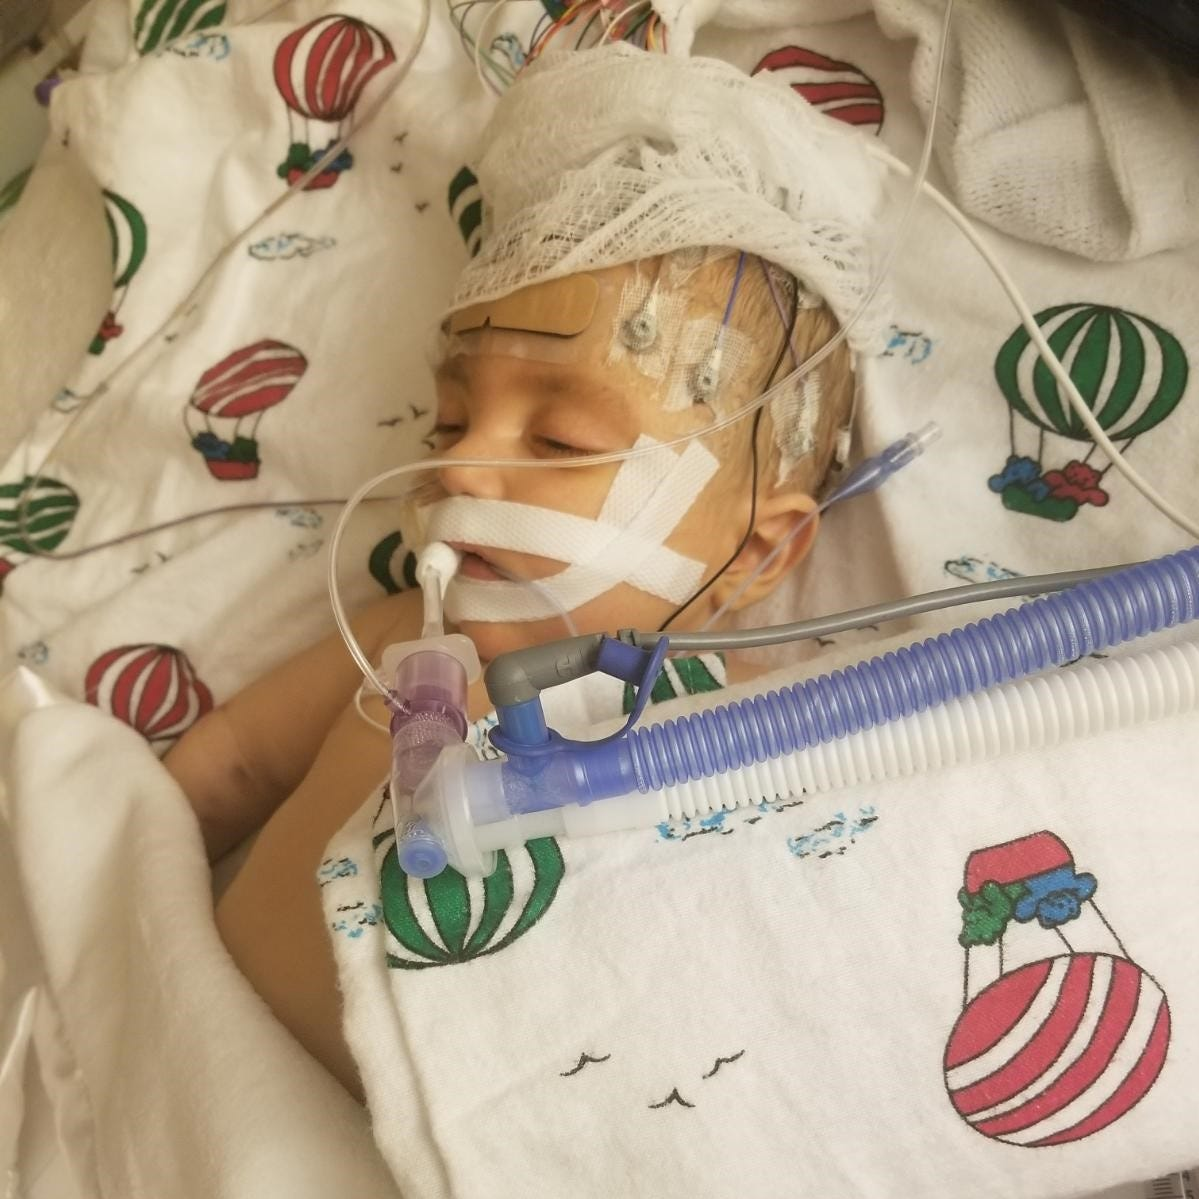 After an outpouring of support, the Waukesha baby who needed a partial liver transplant has died